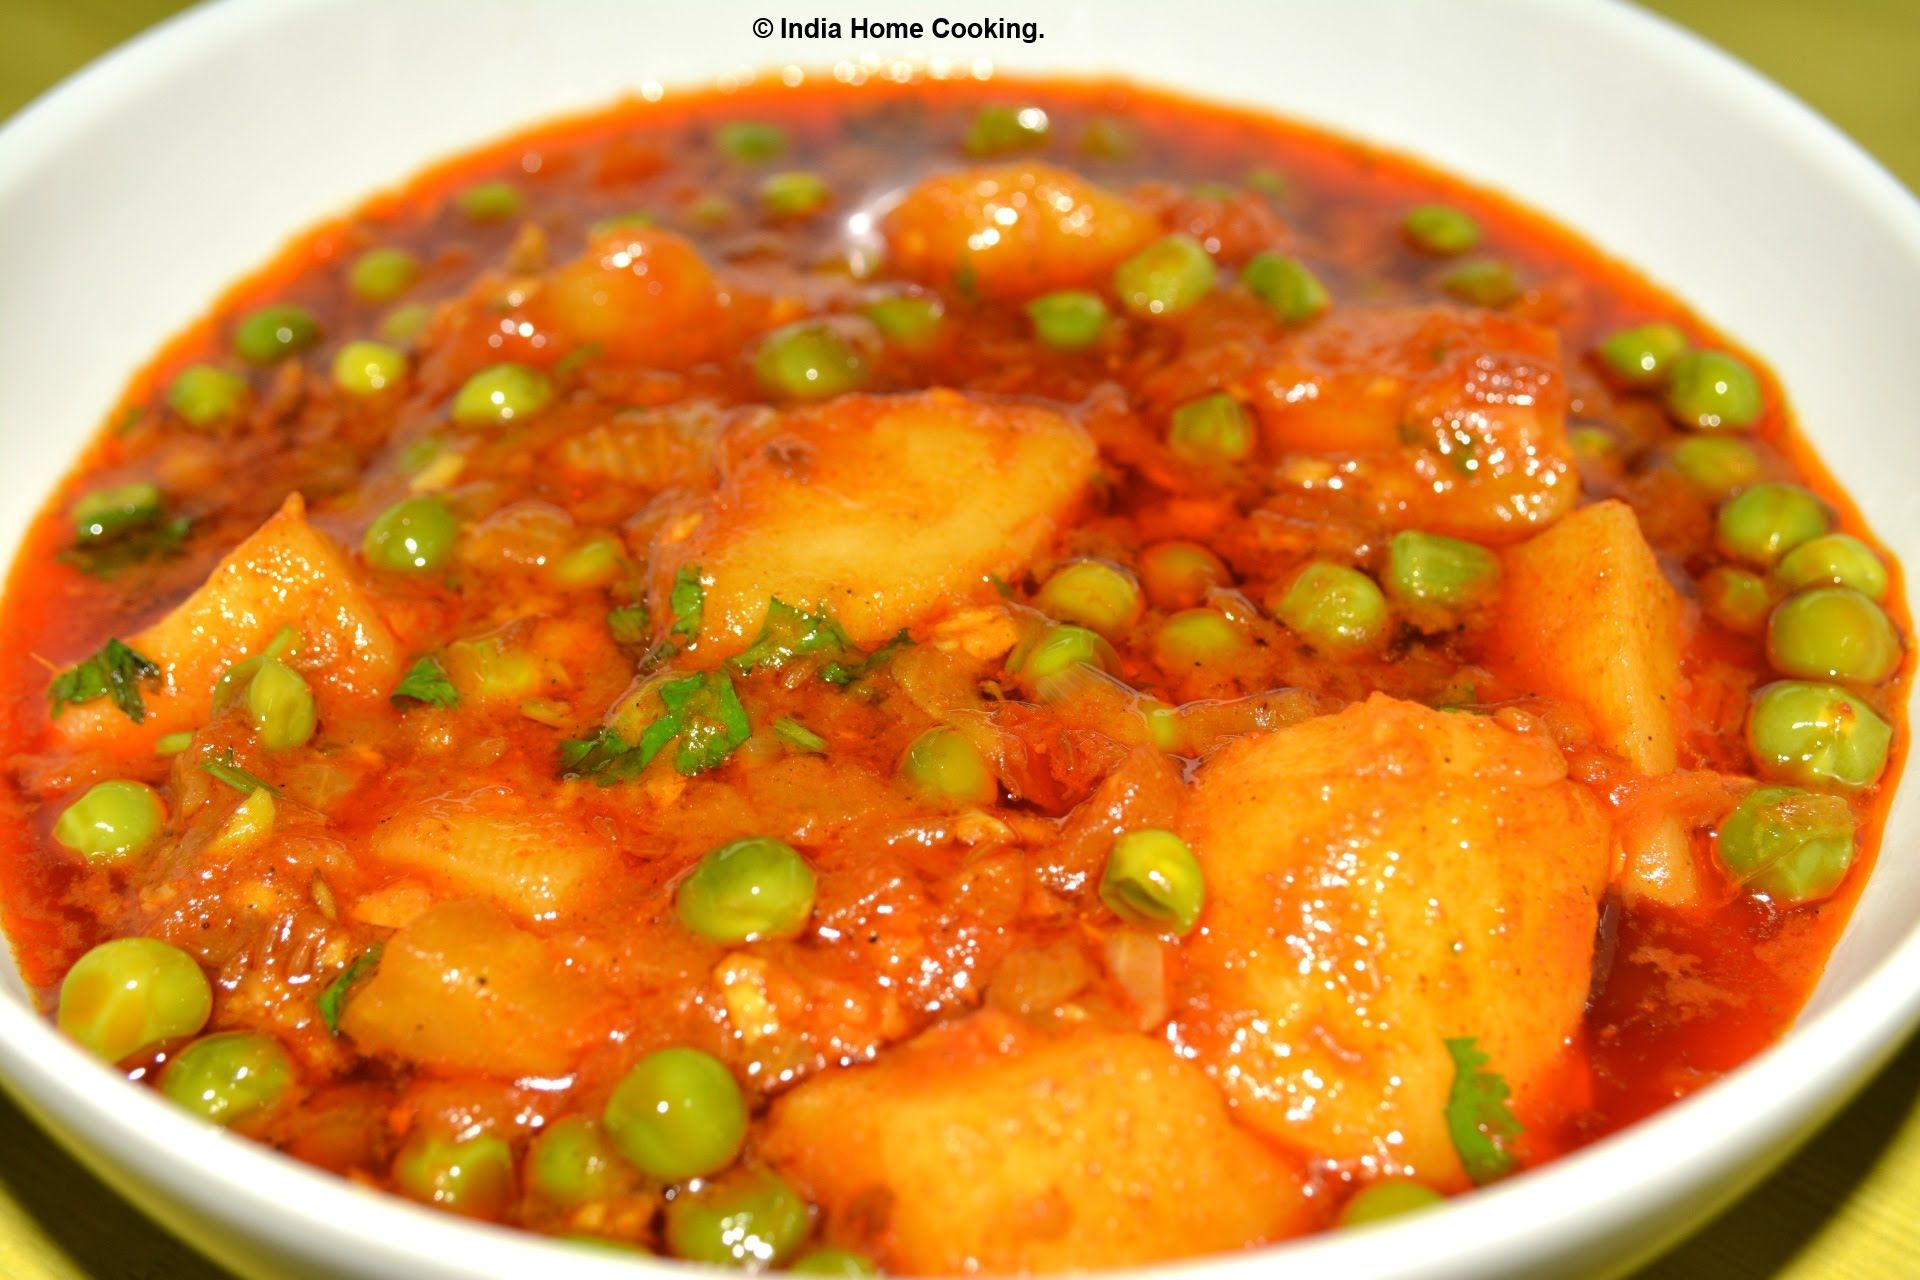 Aloo Matar Or Potato With Green Peas Is Very Famous Indian Vegetable Curry You Will Love To Eat North Indian Style Gr Matar Recipe Indian Food Recipes Recipes